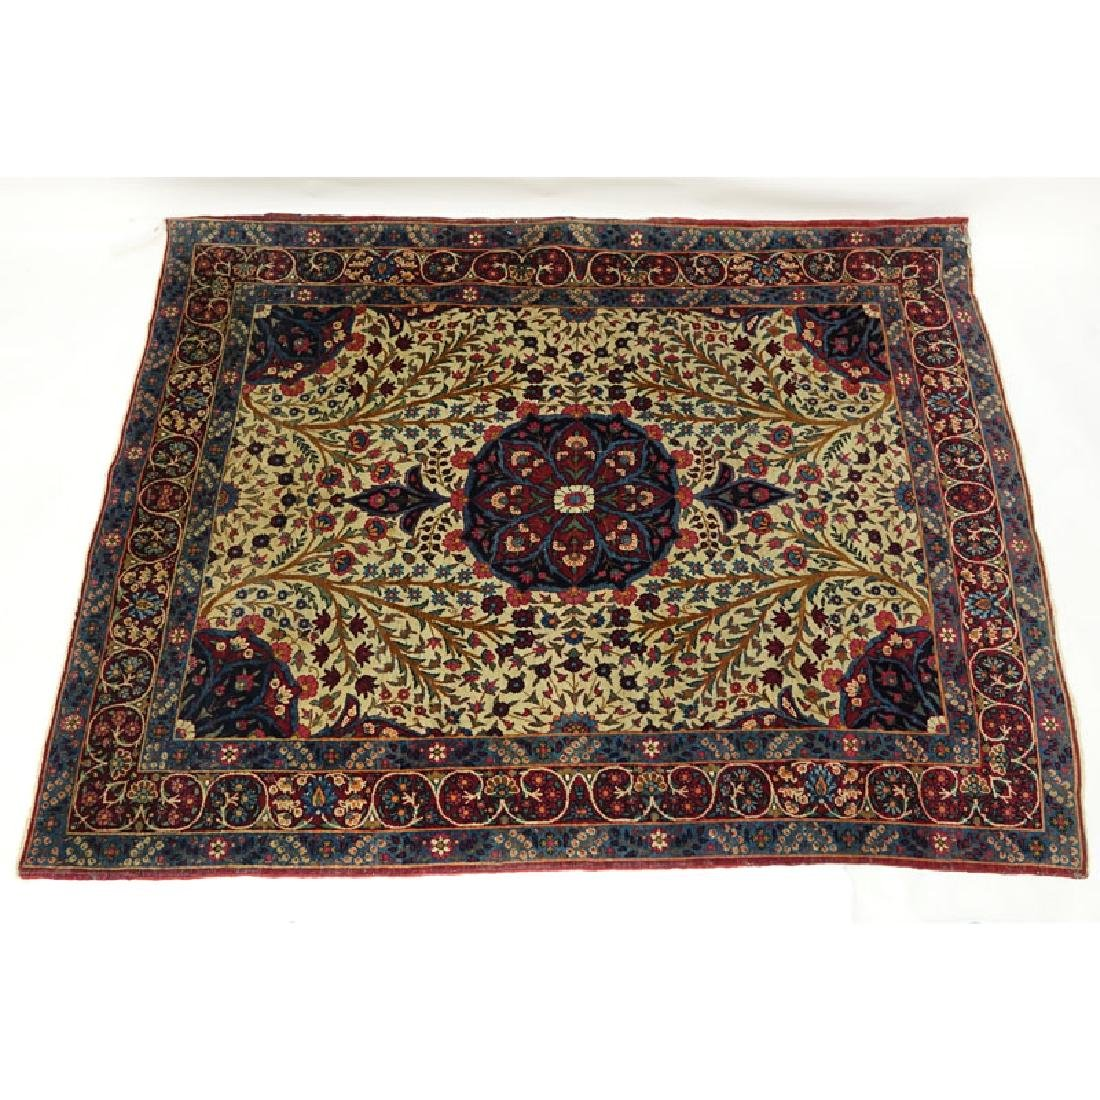 Semi Antique Persian Rug, Floral with Red/ Blue/ and